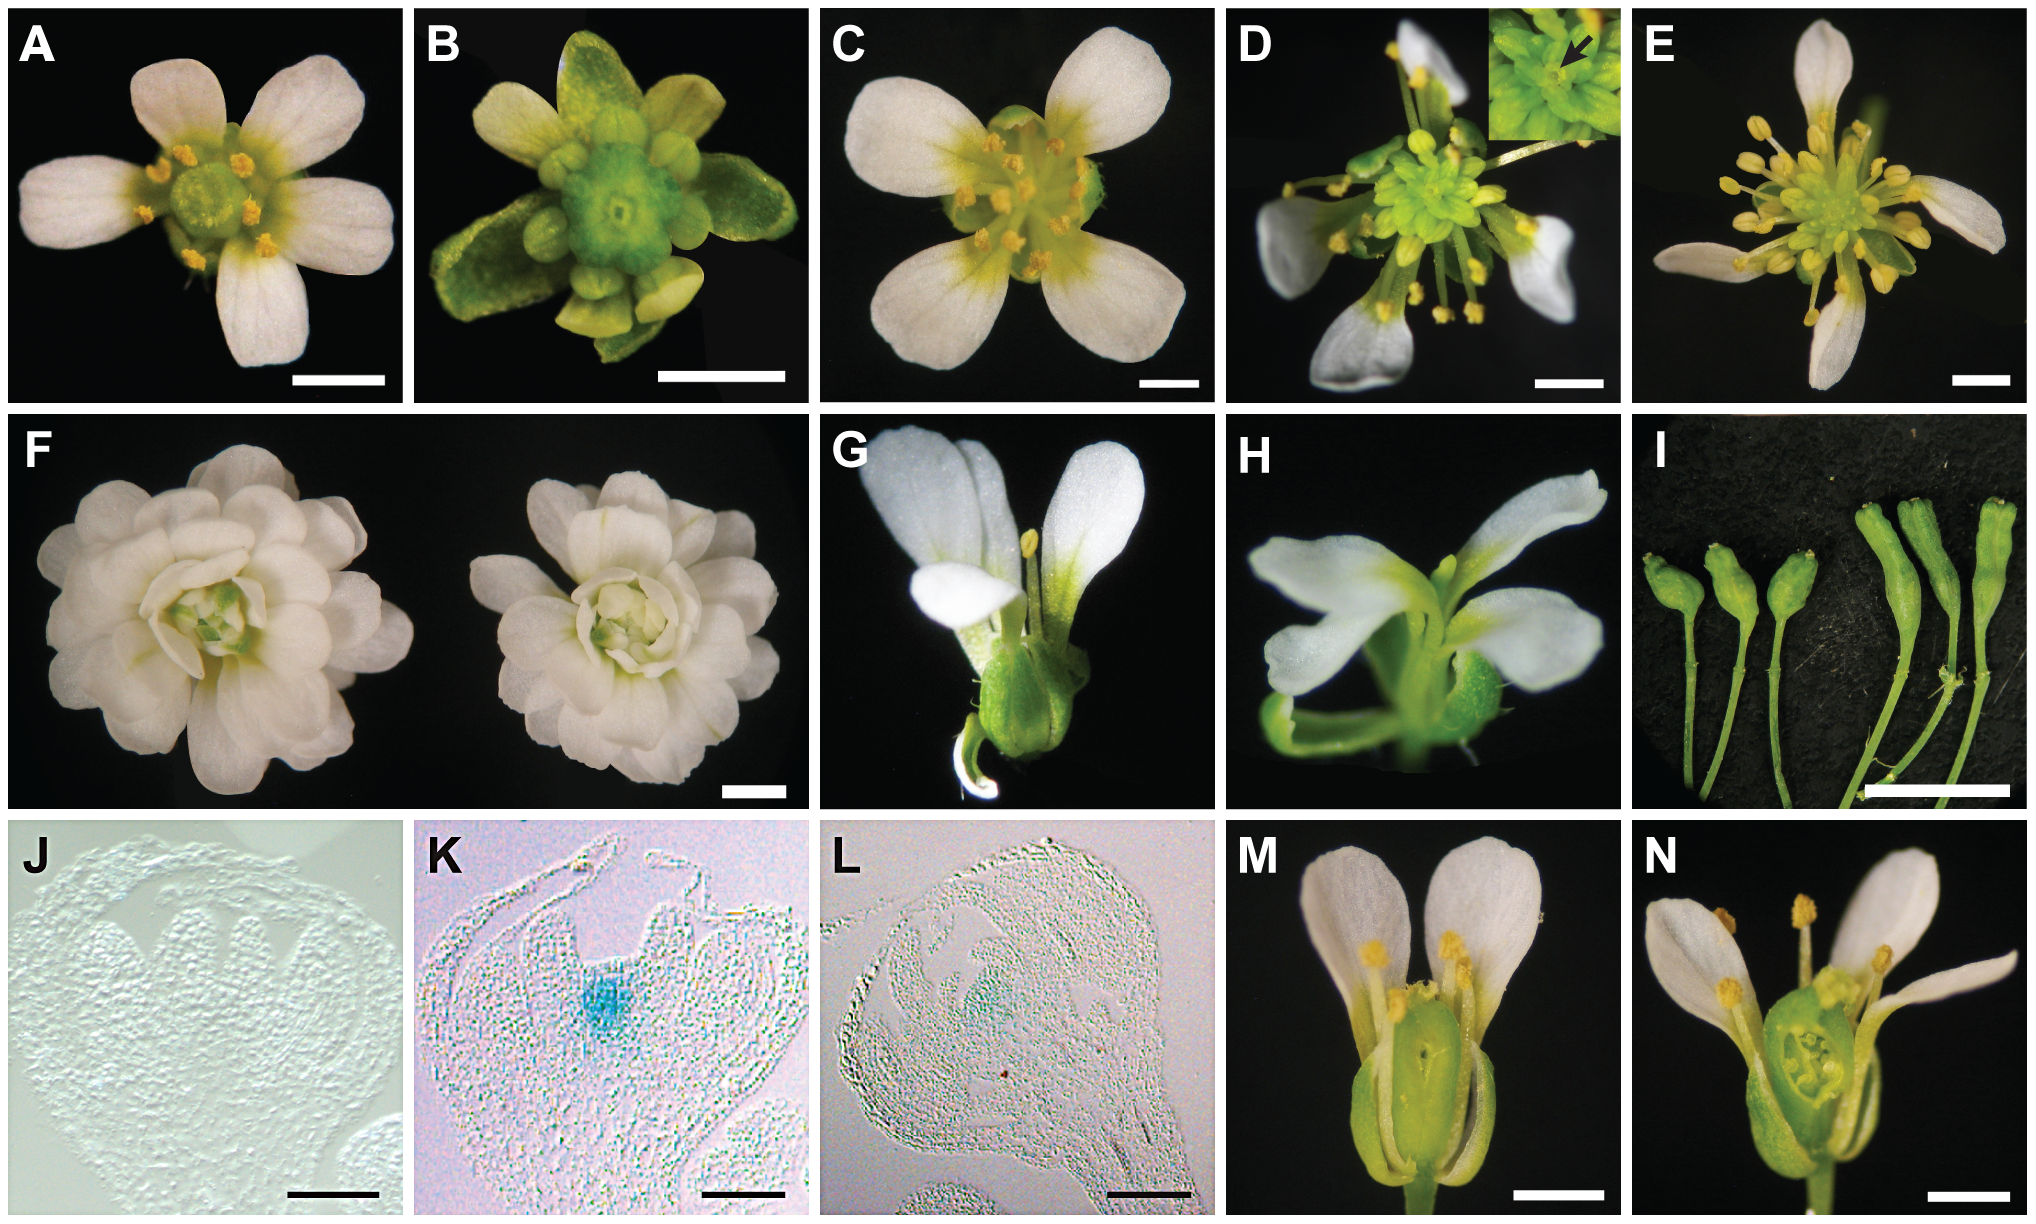 Phenotypes of <i>ag-10 pwr-1</i> in combination with loss-of-function mutations in other floral determinacy regulators.